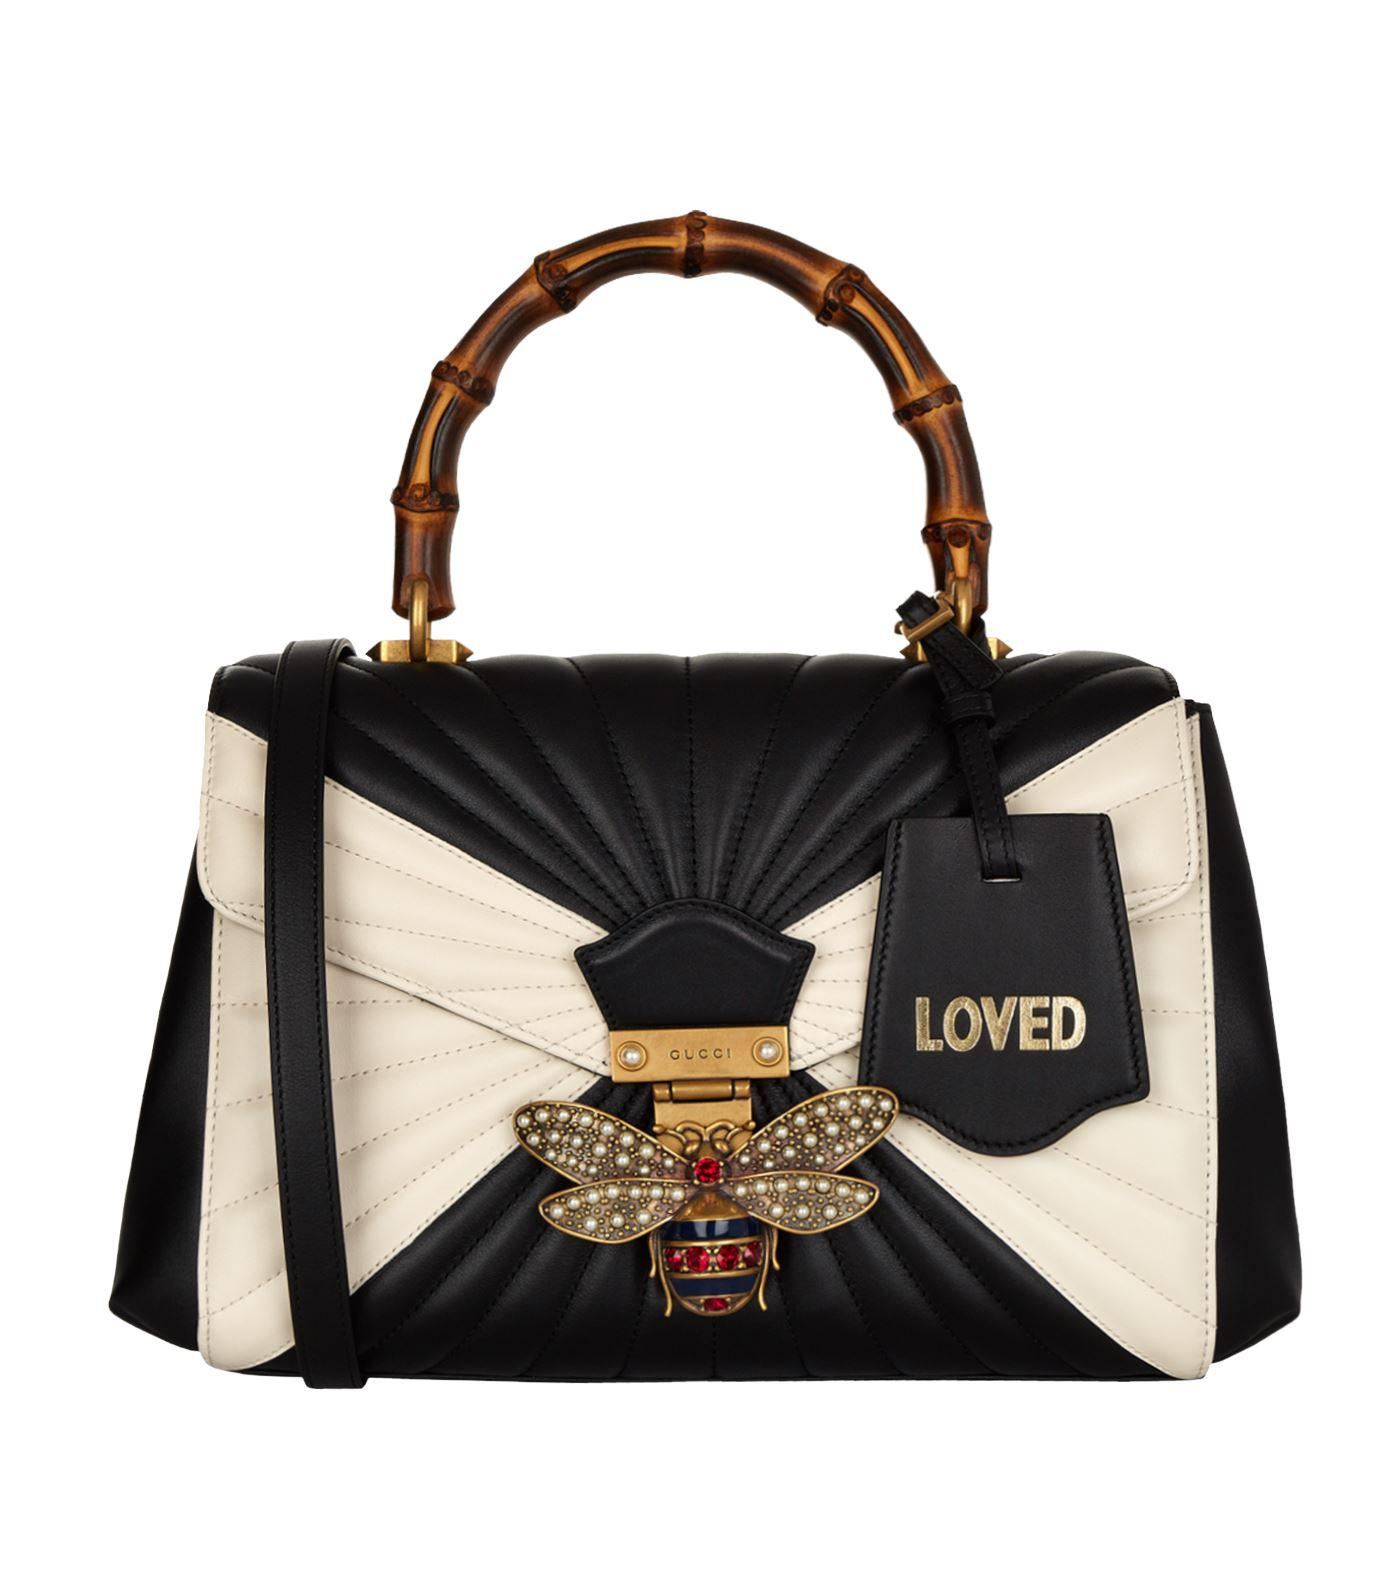 e67bc0b69642 Gucci Queen Margaret Bamboo Top Handle Bag in Black - Lyst